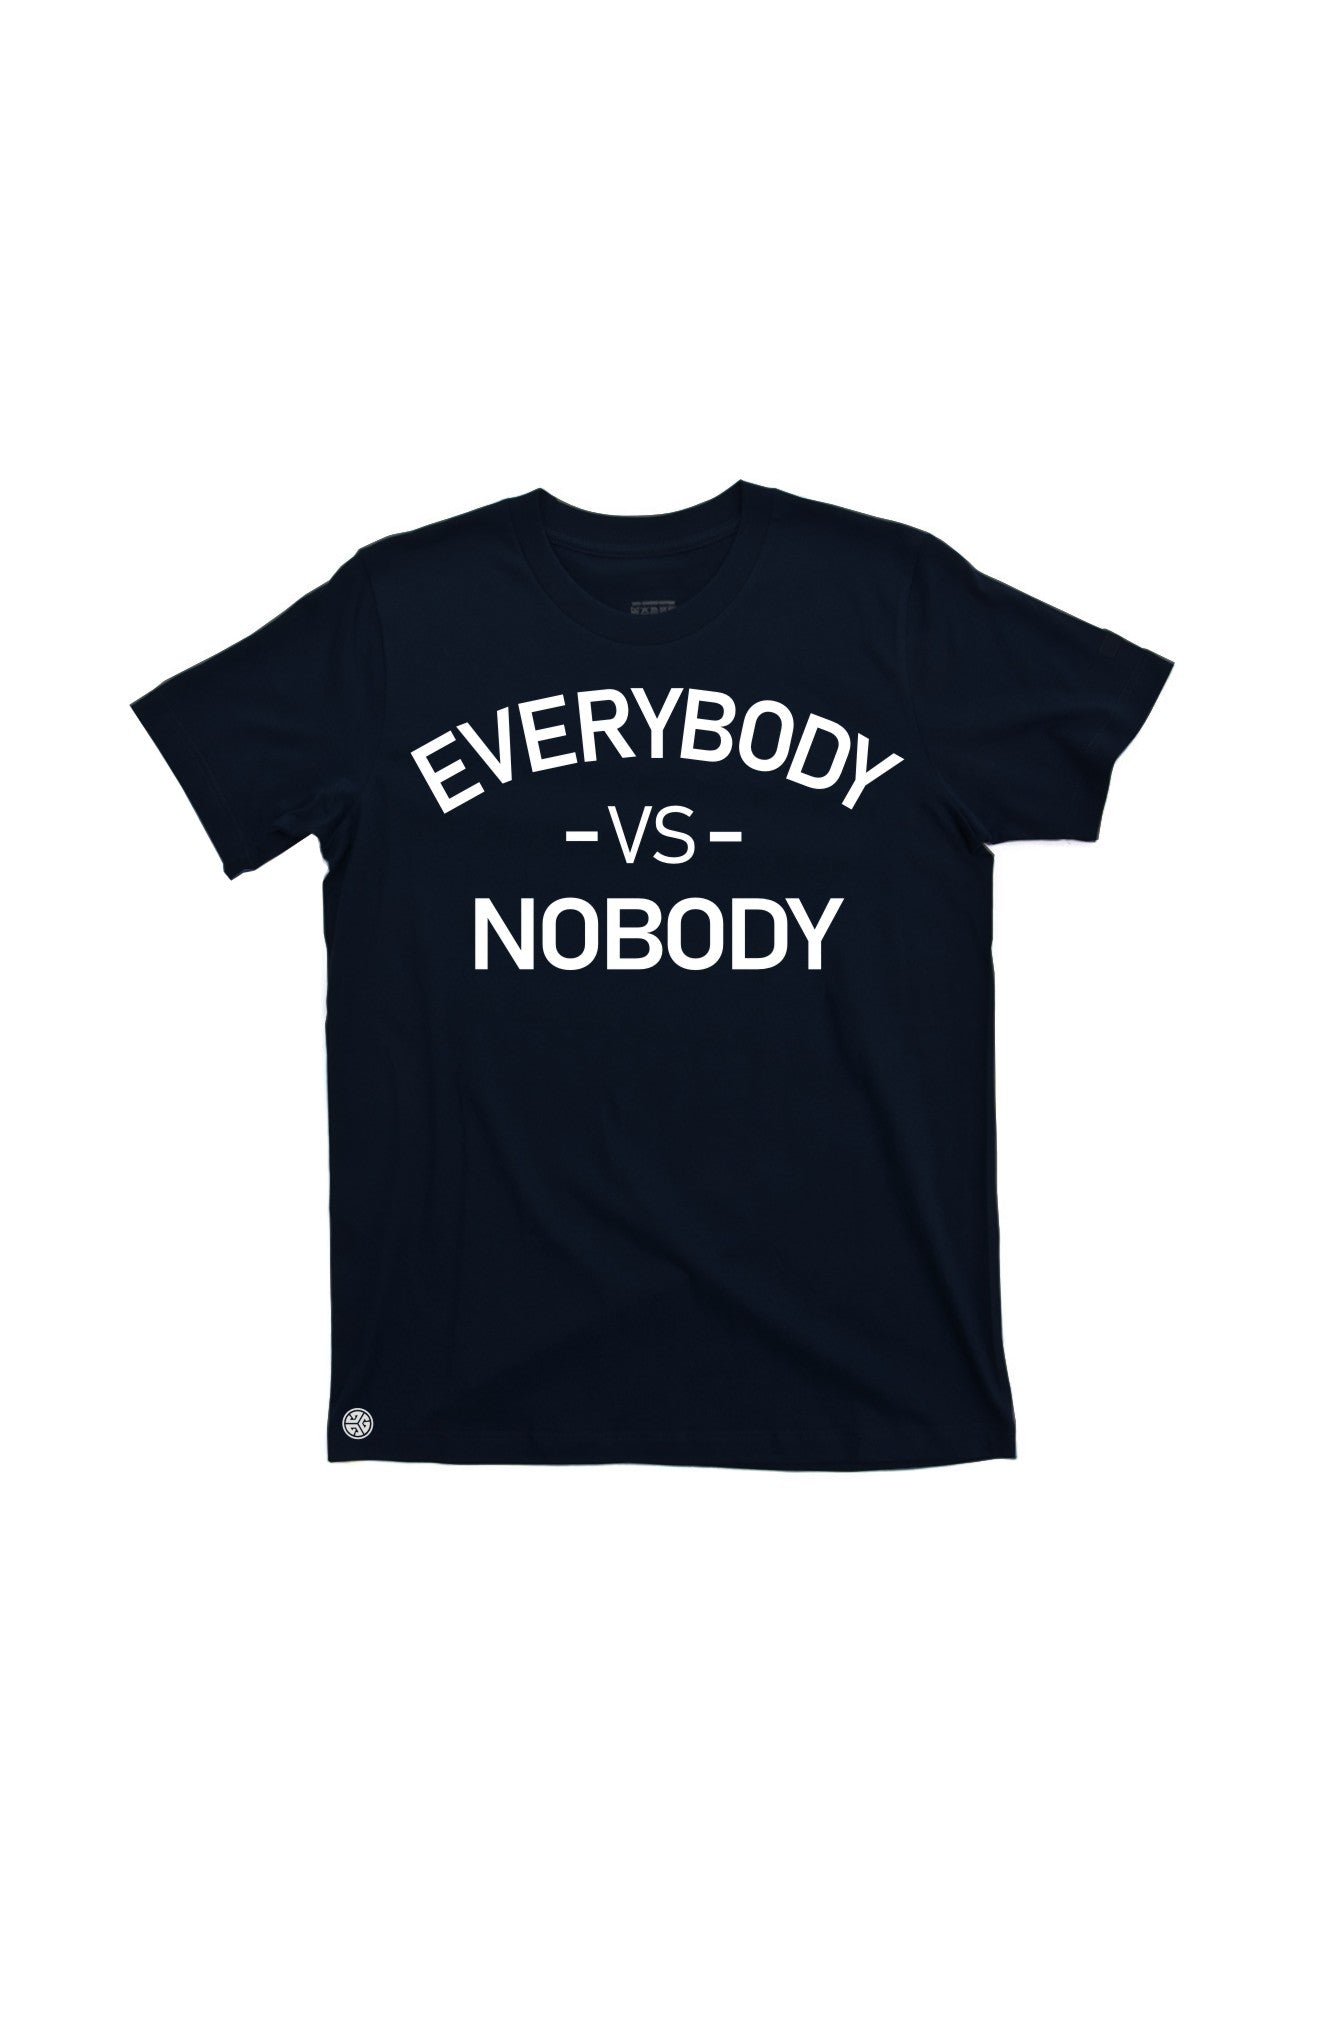 EVERYBODY NOBODY T-shirt by Grubwear